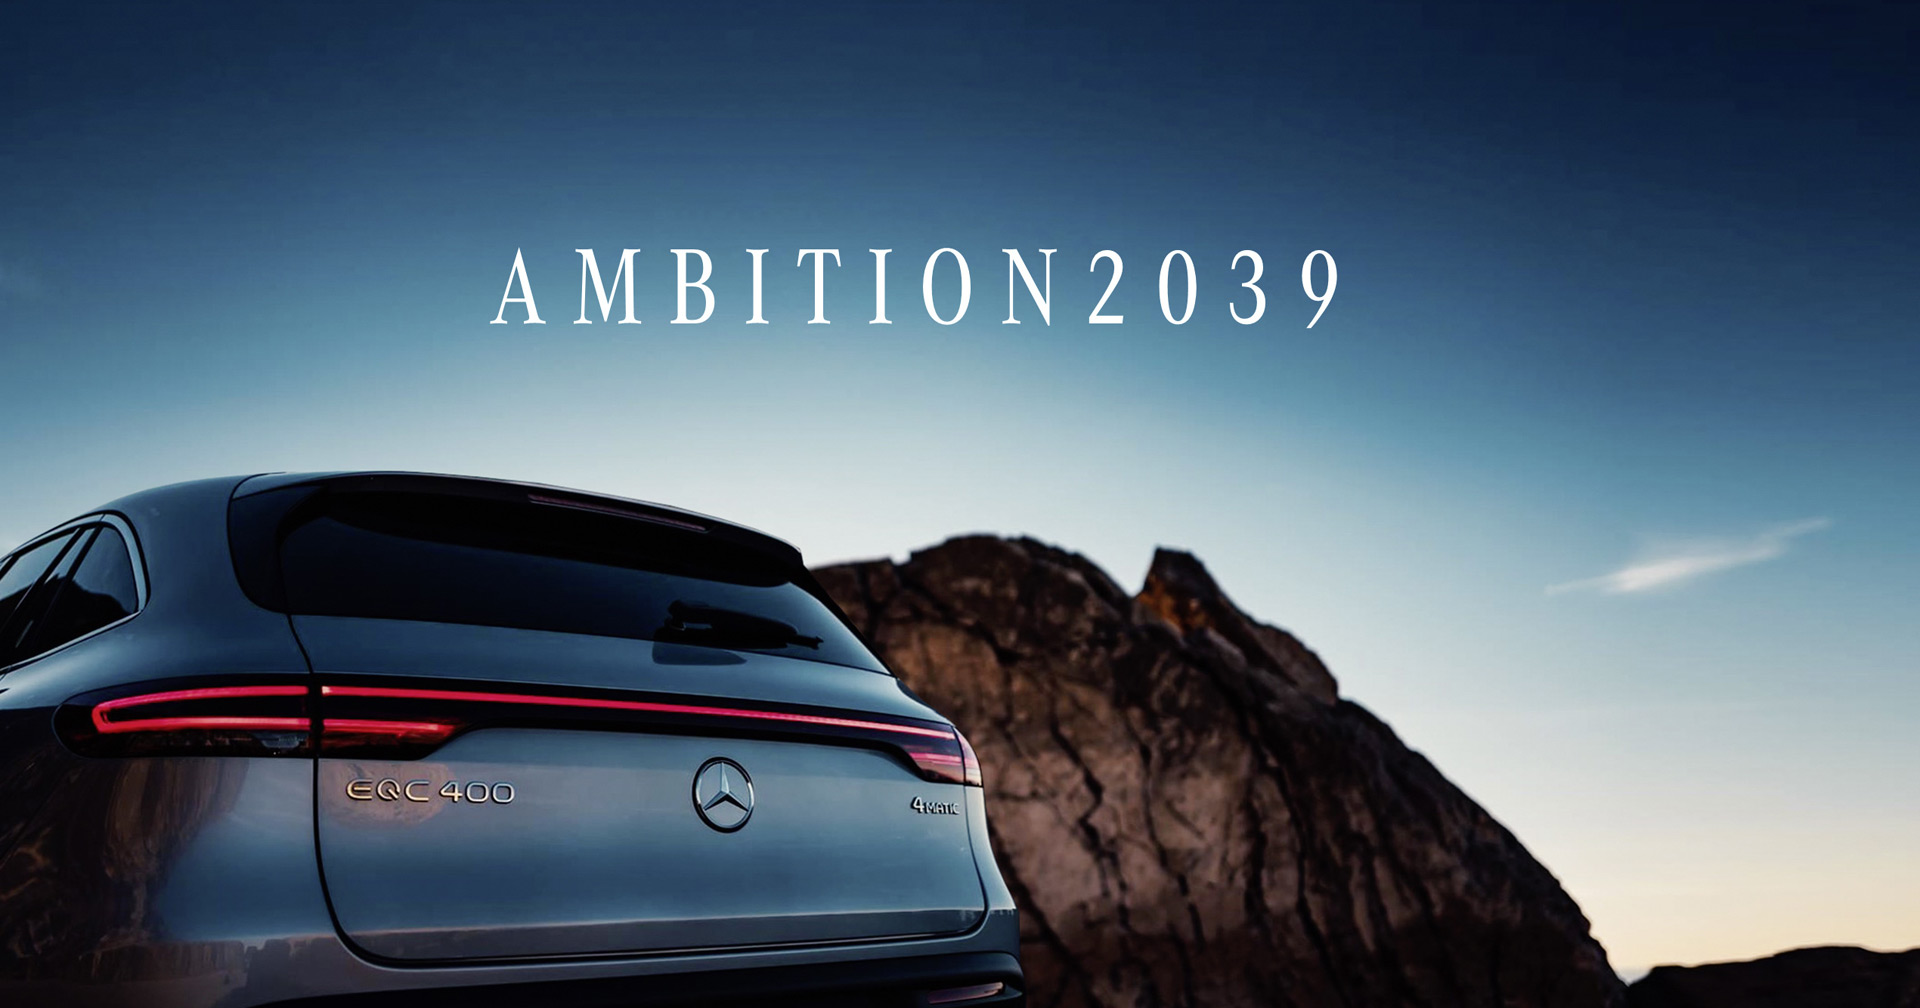 mercedes-estimates-plug-in-hybrids-and-evs-will-be-half-of-sales-by-2030